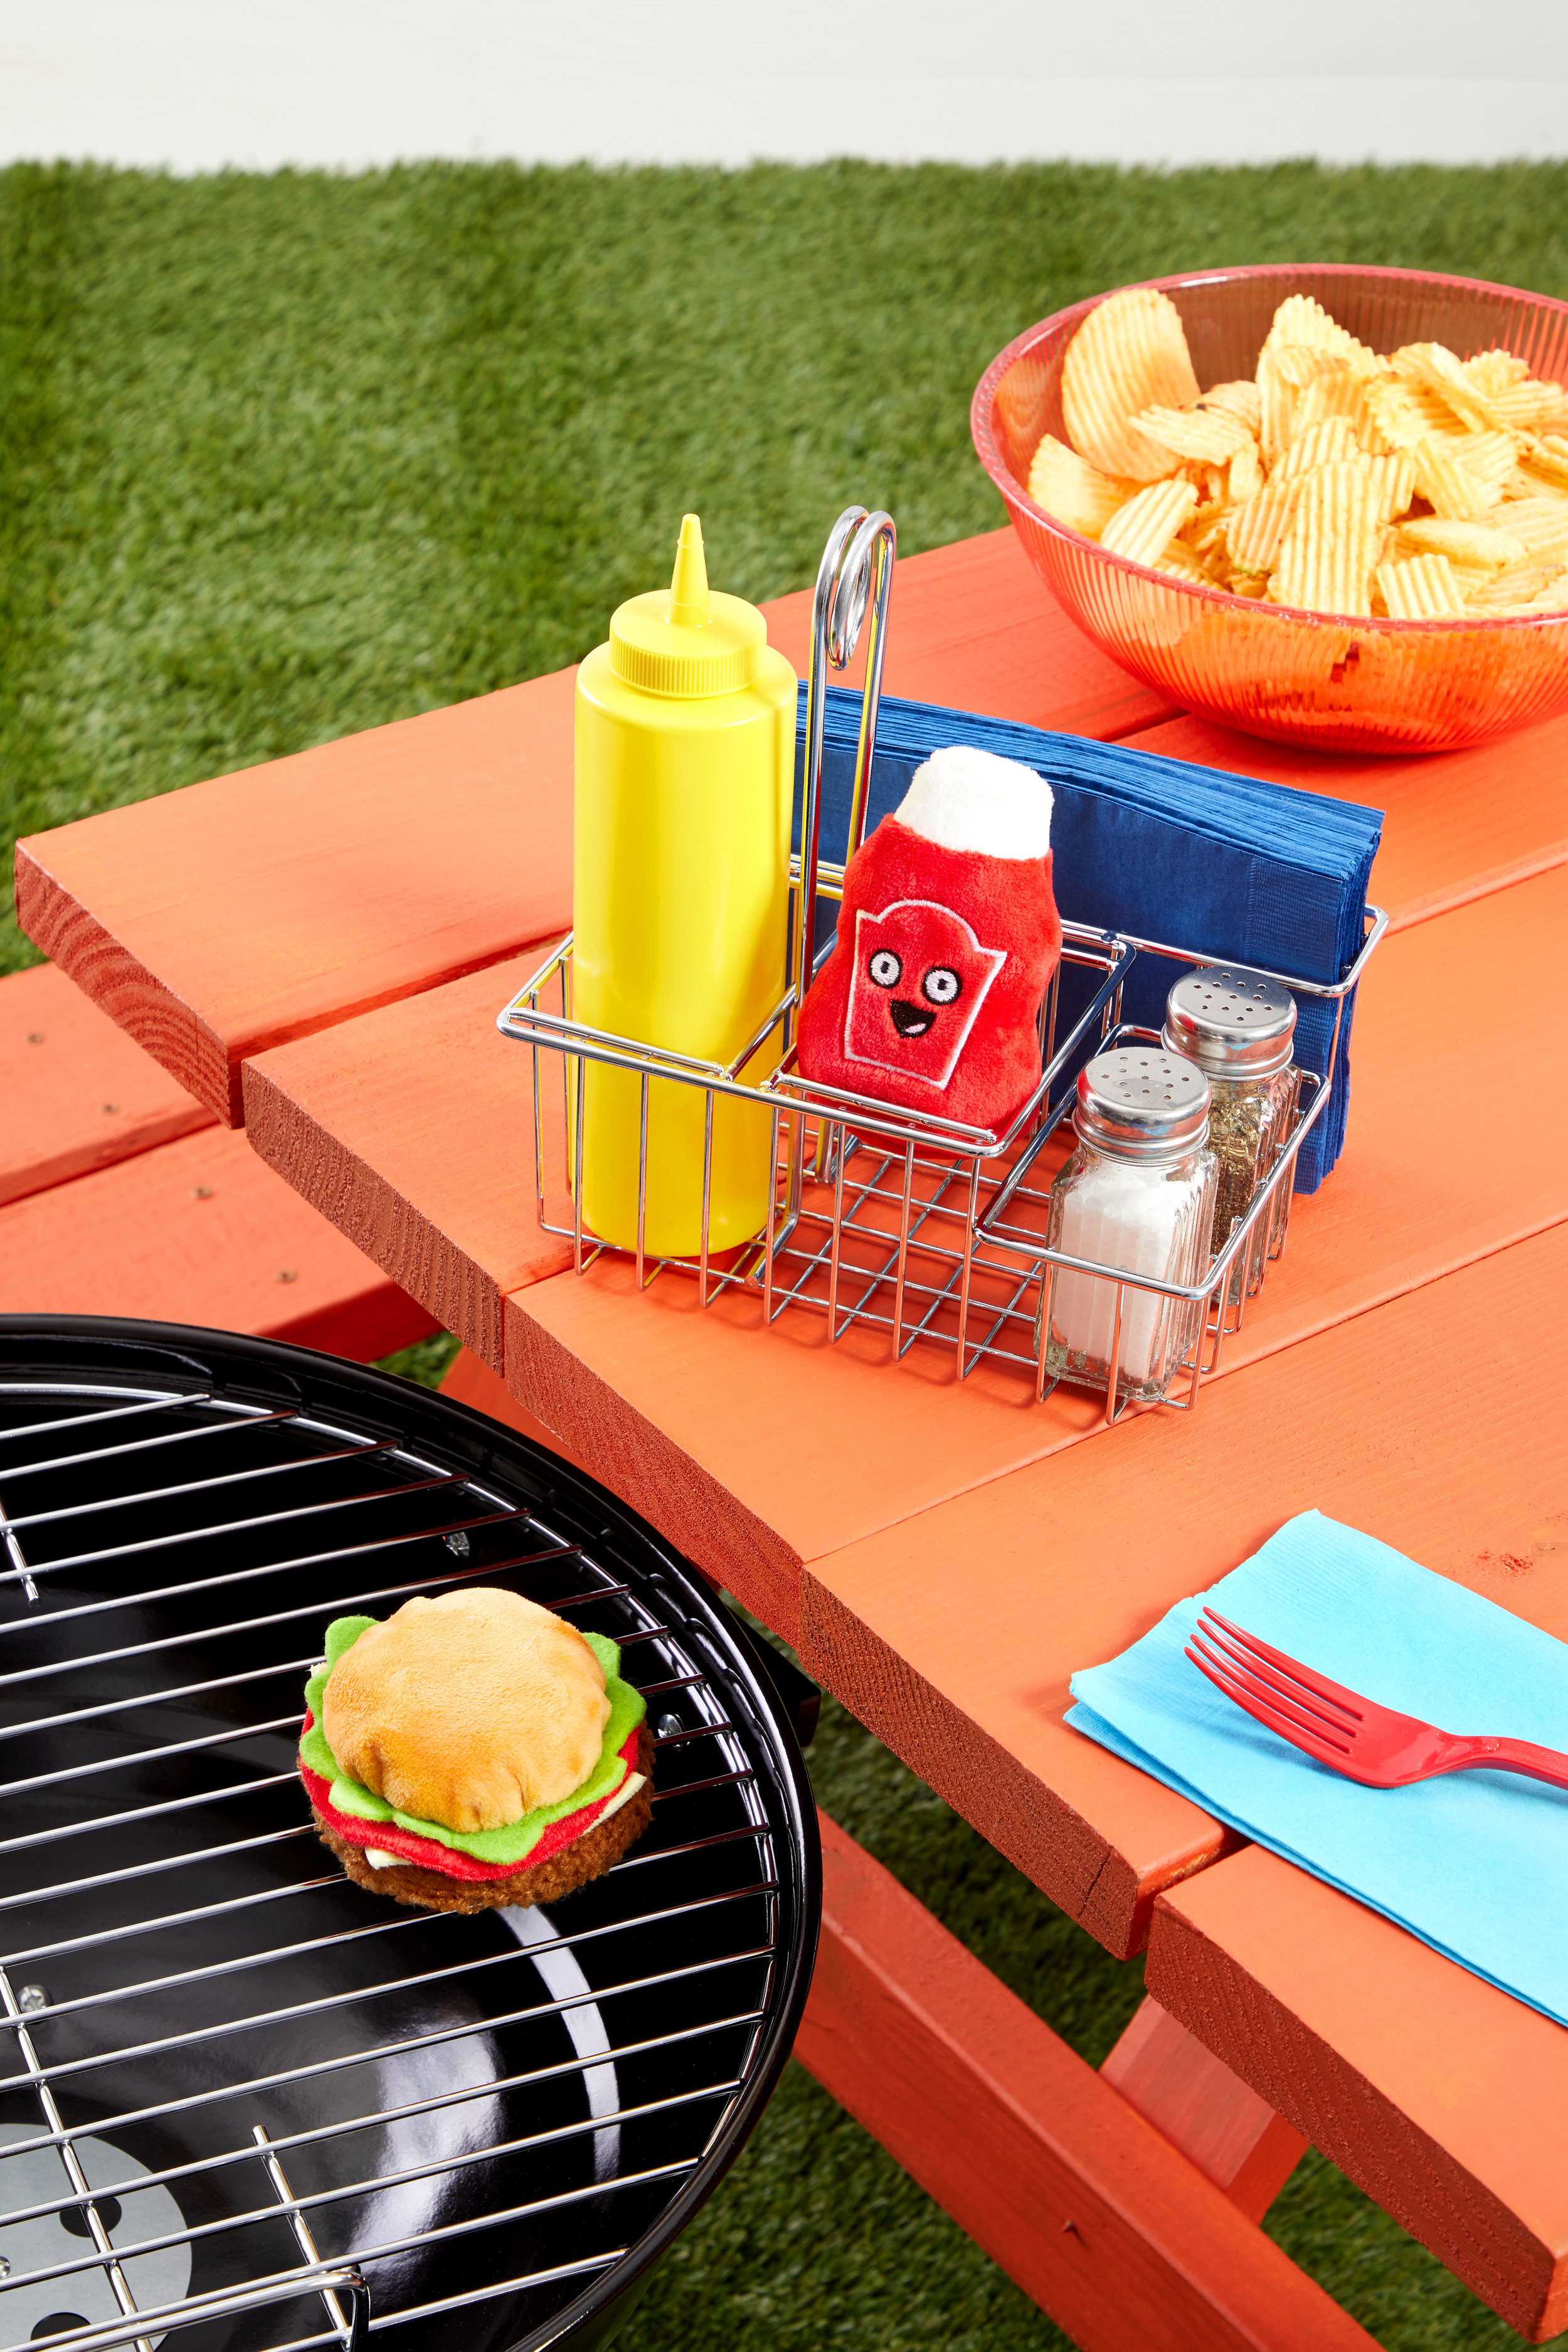 RETAIL COOKOUT-BURGER-KETCHUP STYLED-PRODUCT 0030.jpg